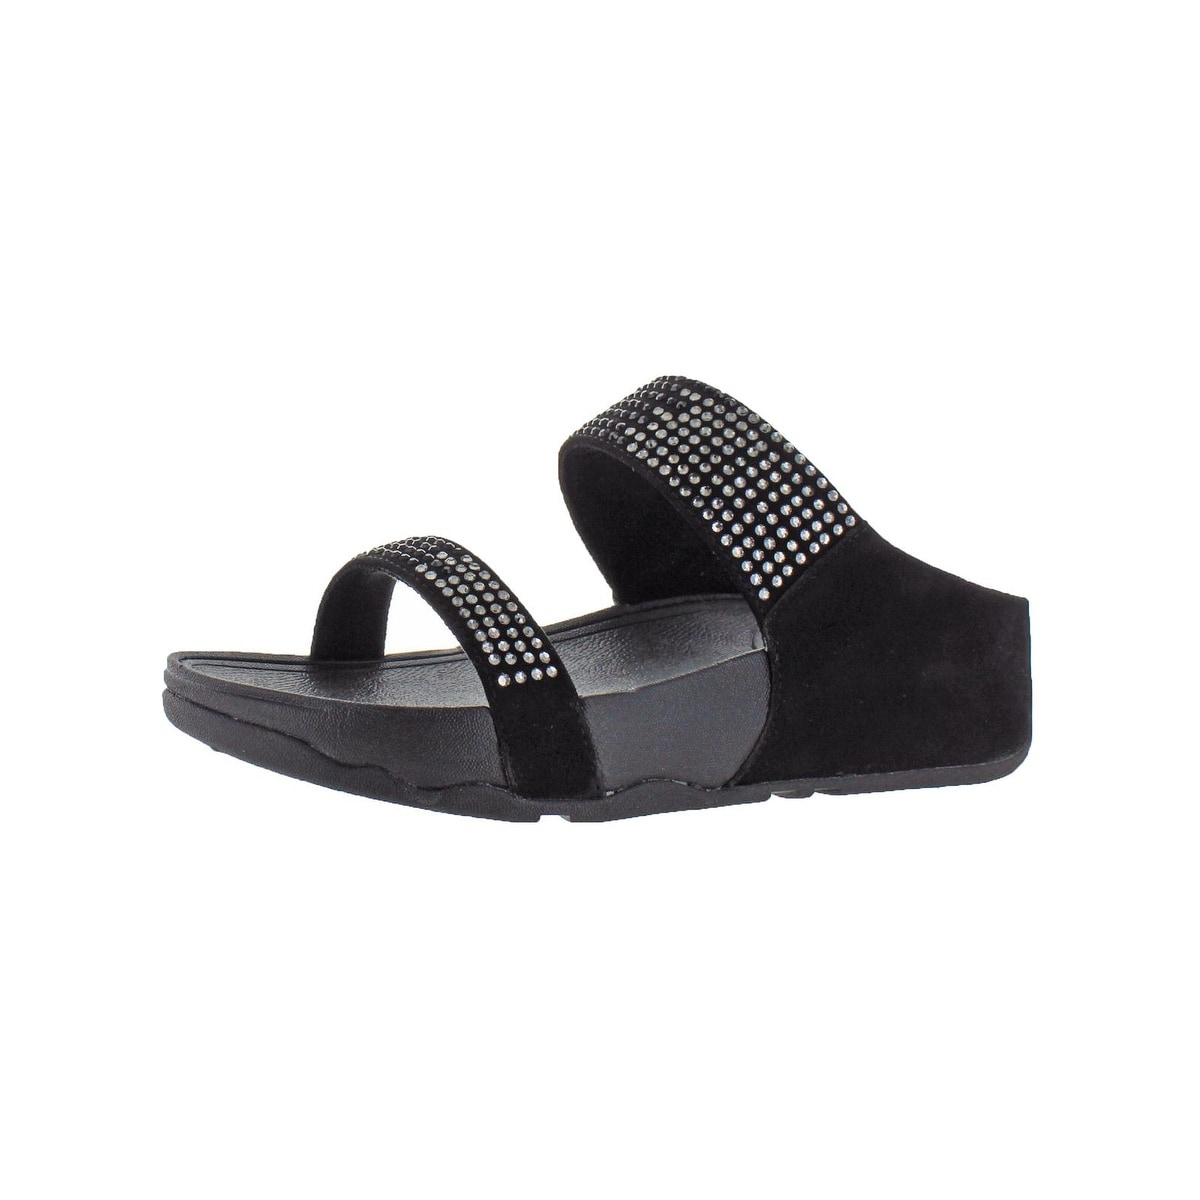 05ad8d2d4 Buy FitFlop Women s Sandals Online at Overstock